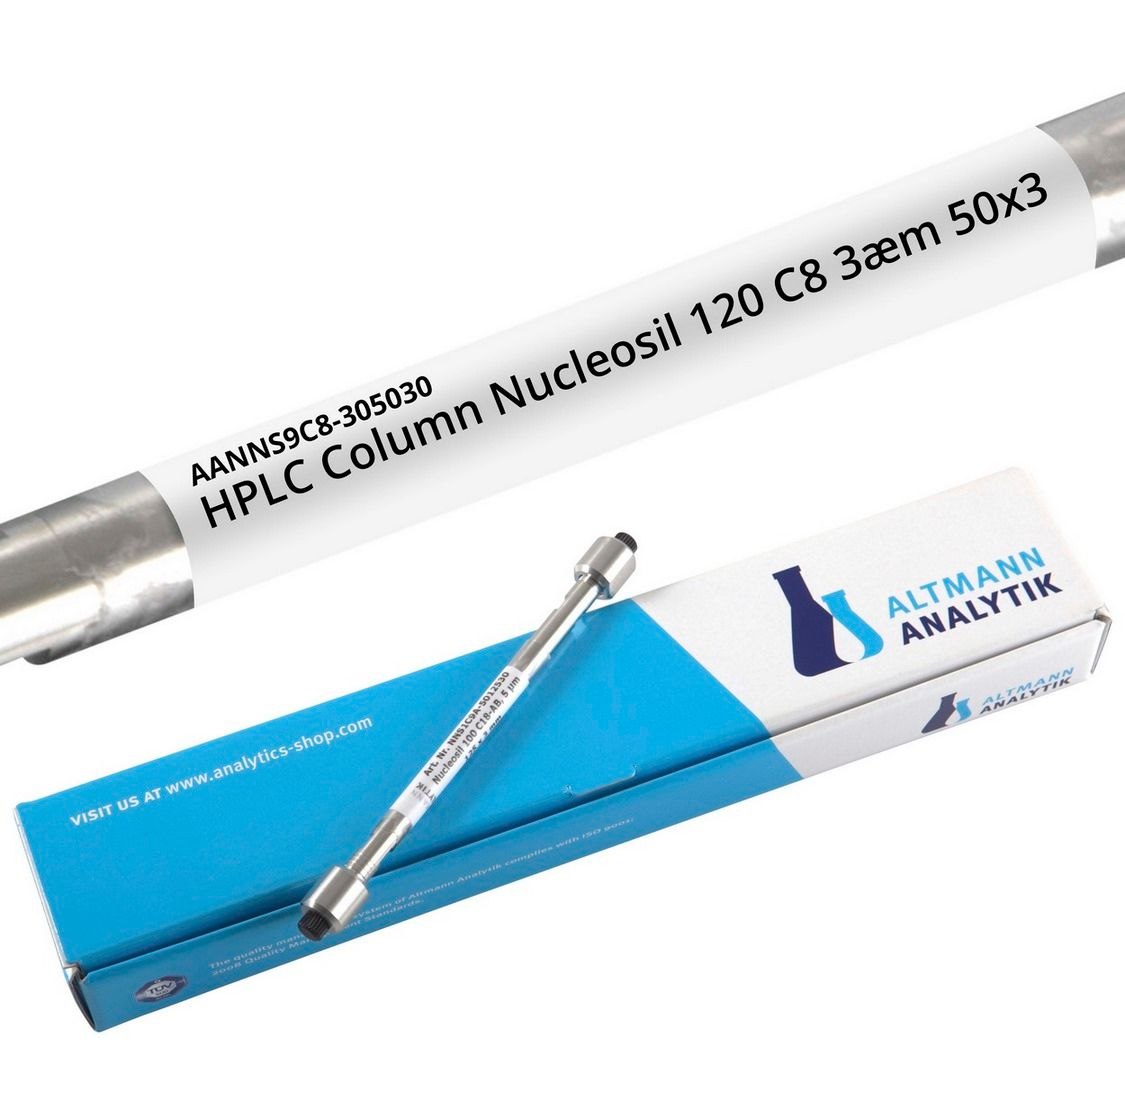 HPLC Column Nucleosil 120 C8 3µm 50x3 mm, 120A